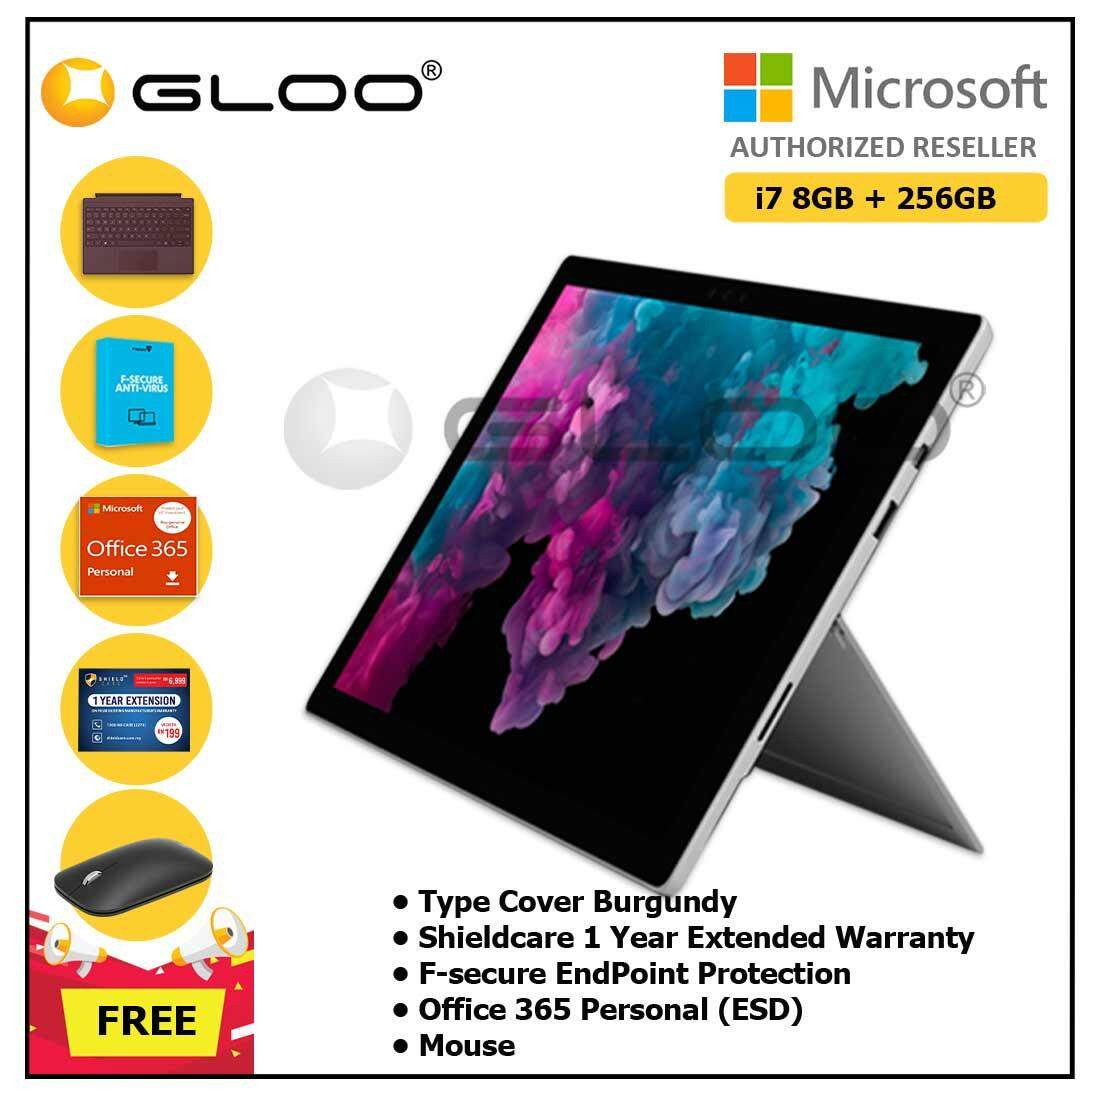 Microsoft Surface Pro 6 Core i7/8GB RAM - 256GB + Type Cover Burgundy + F-Secure End Point Protection + Office 365 Personal (ESD) + Mouse